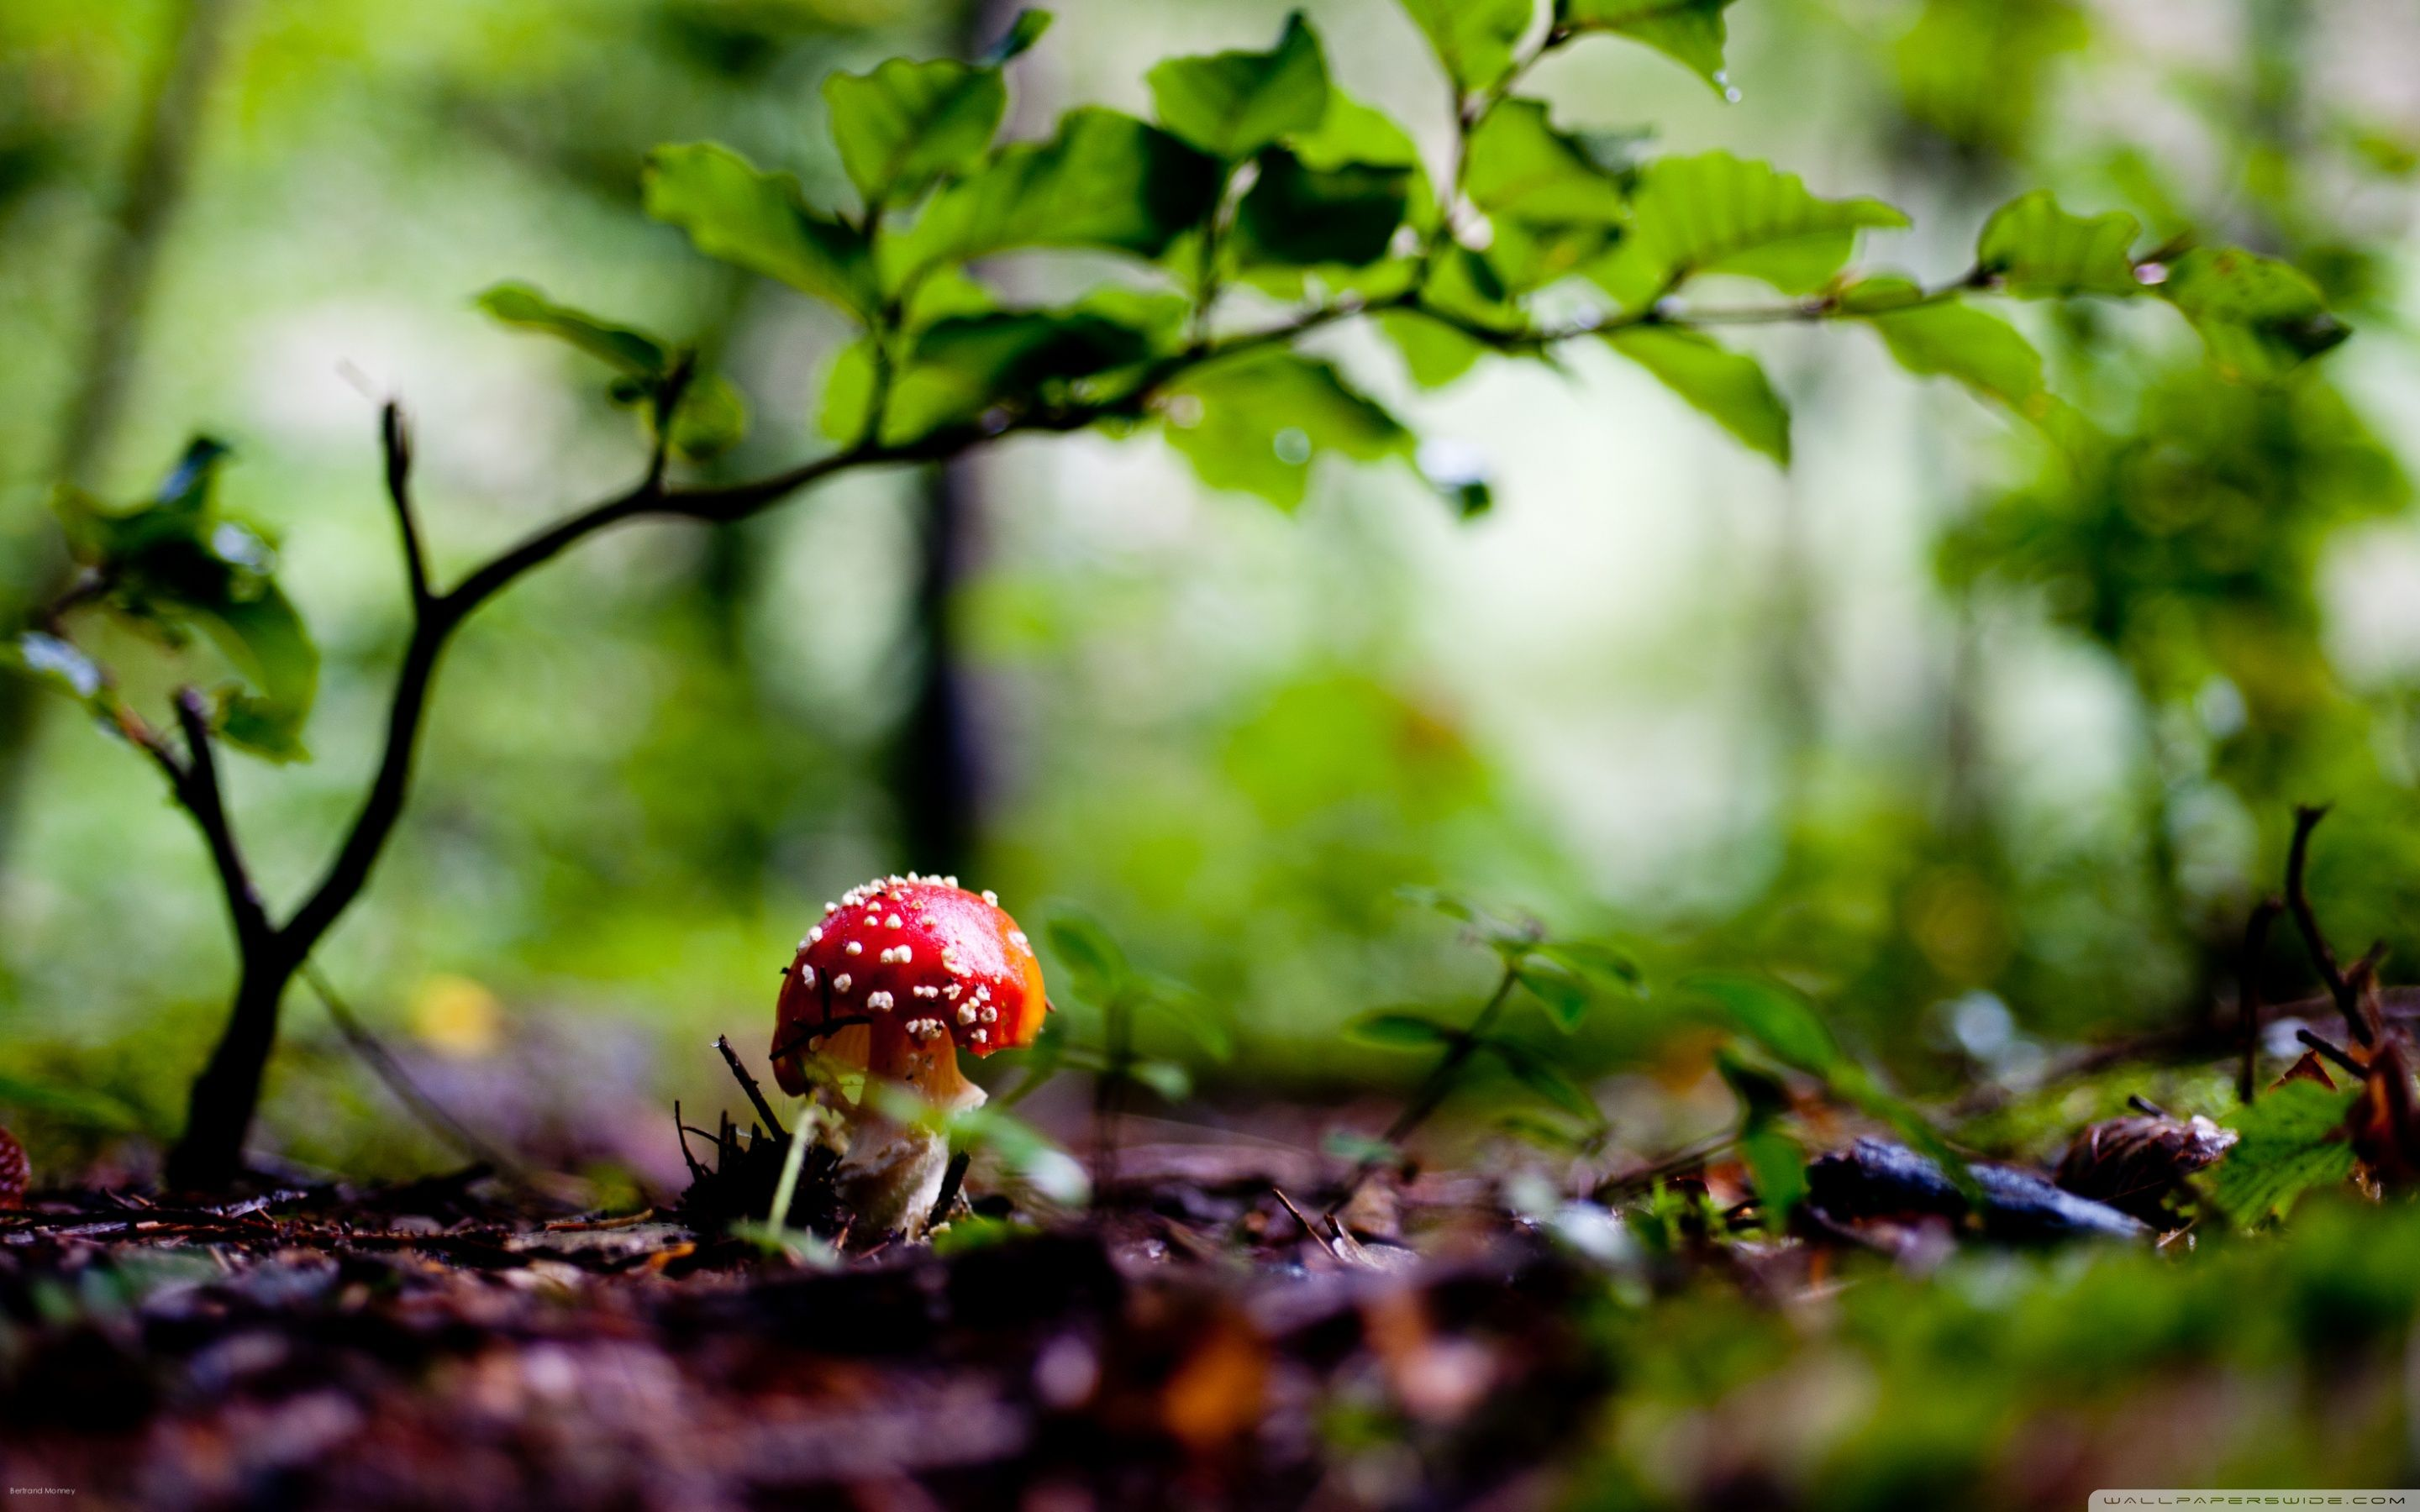 D Mushroom Wallpapers on